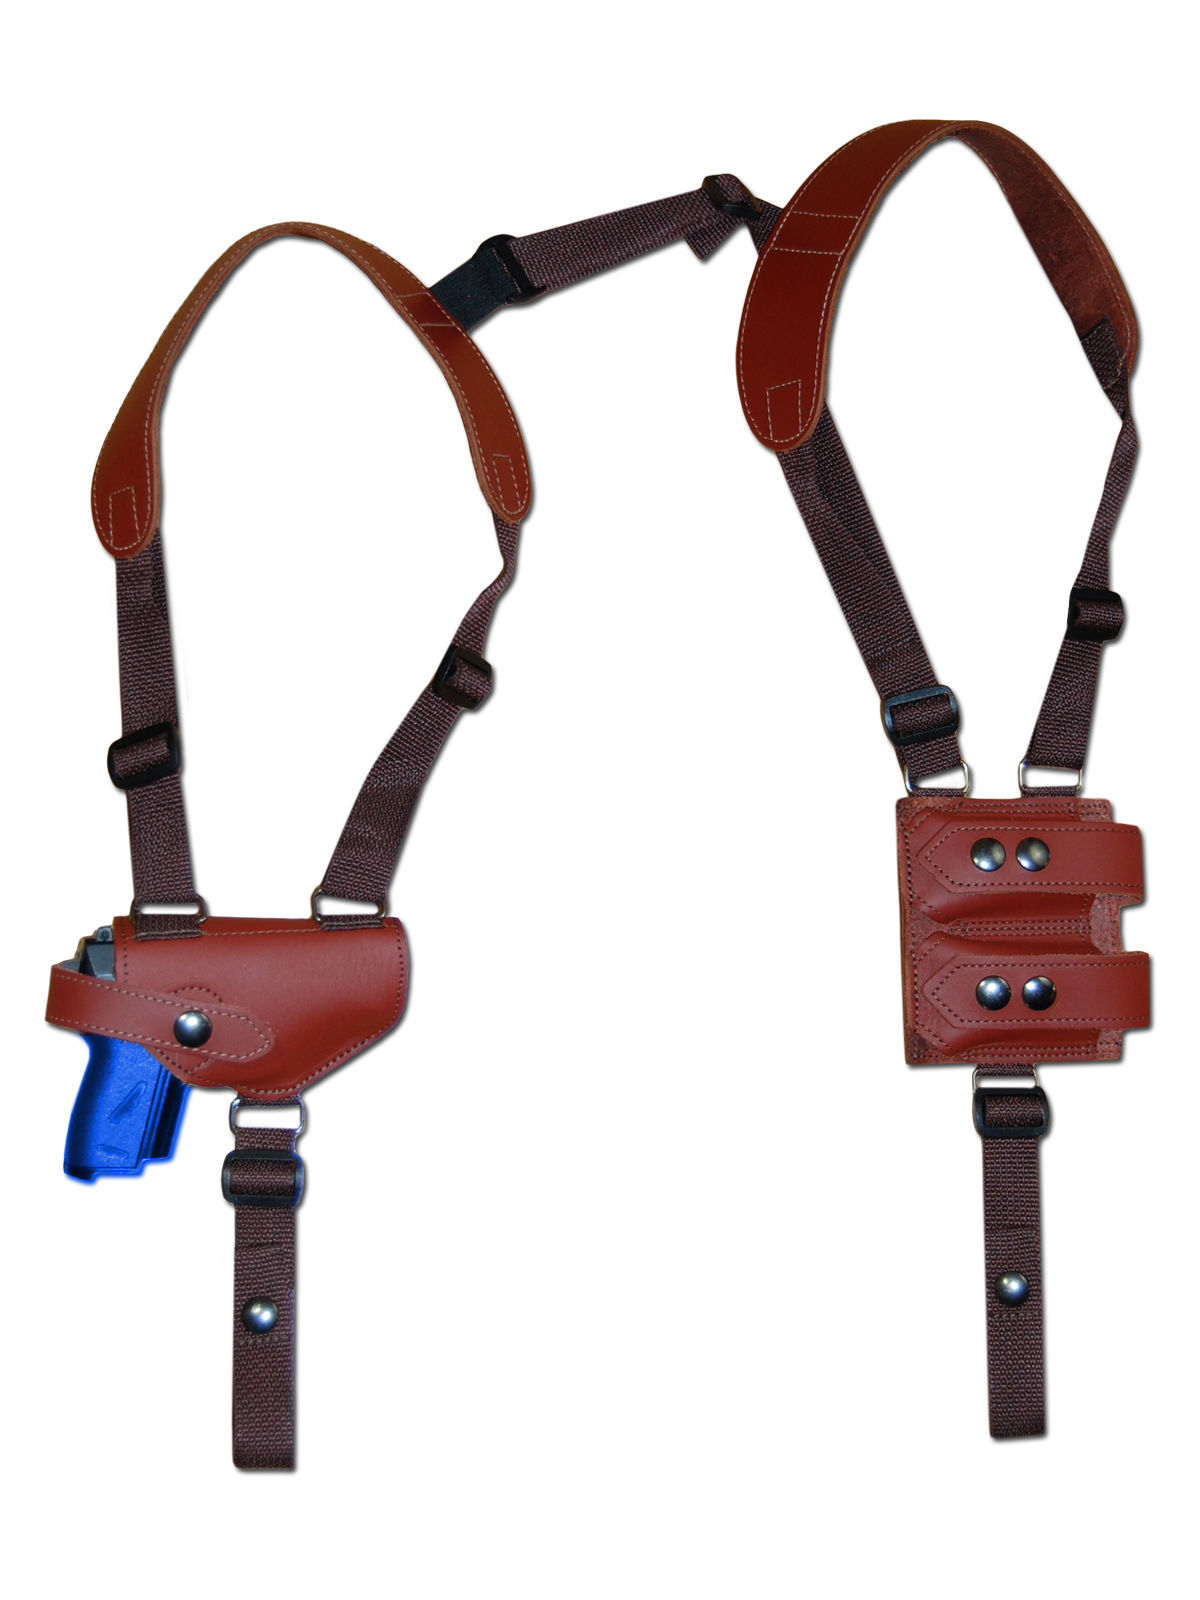 NEW Burgundy Leather Shoulder Holster w/Dbl Mag Pouch Kel-Tec, Ruger Mini-Pocket